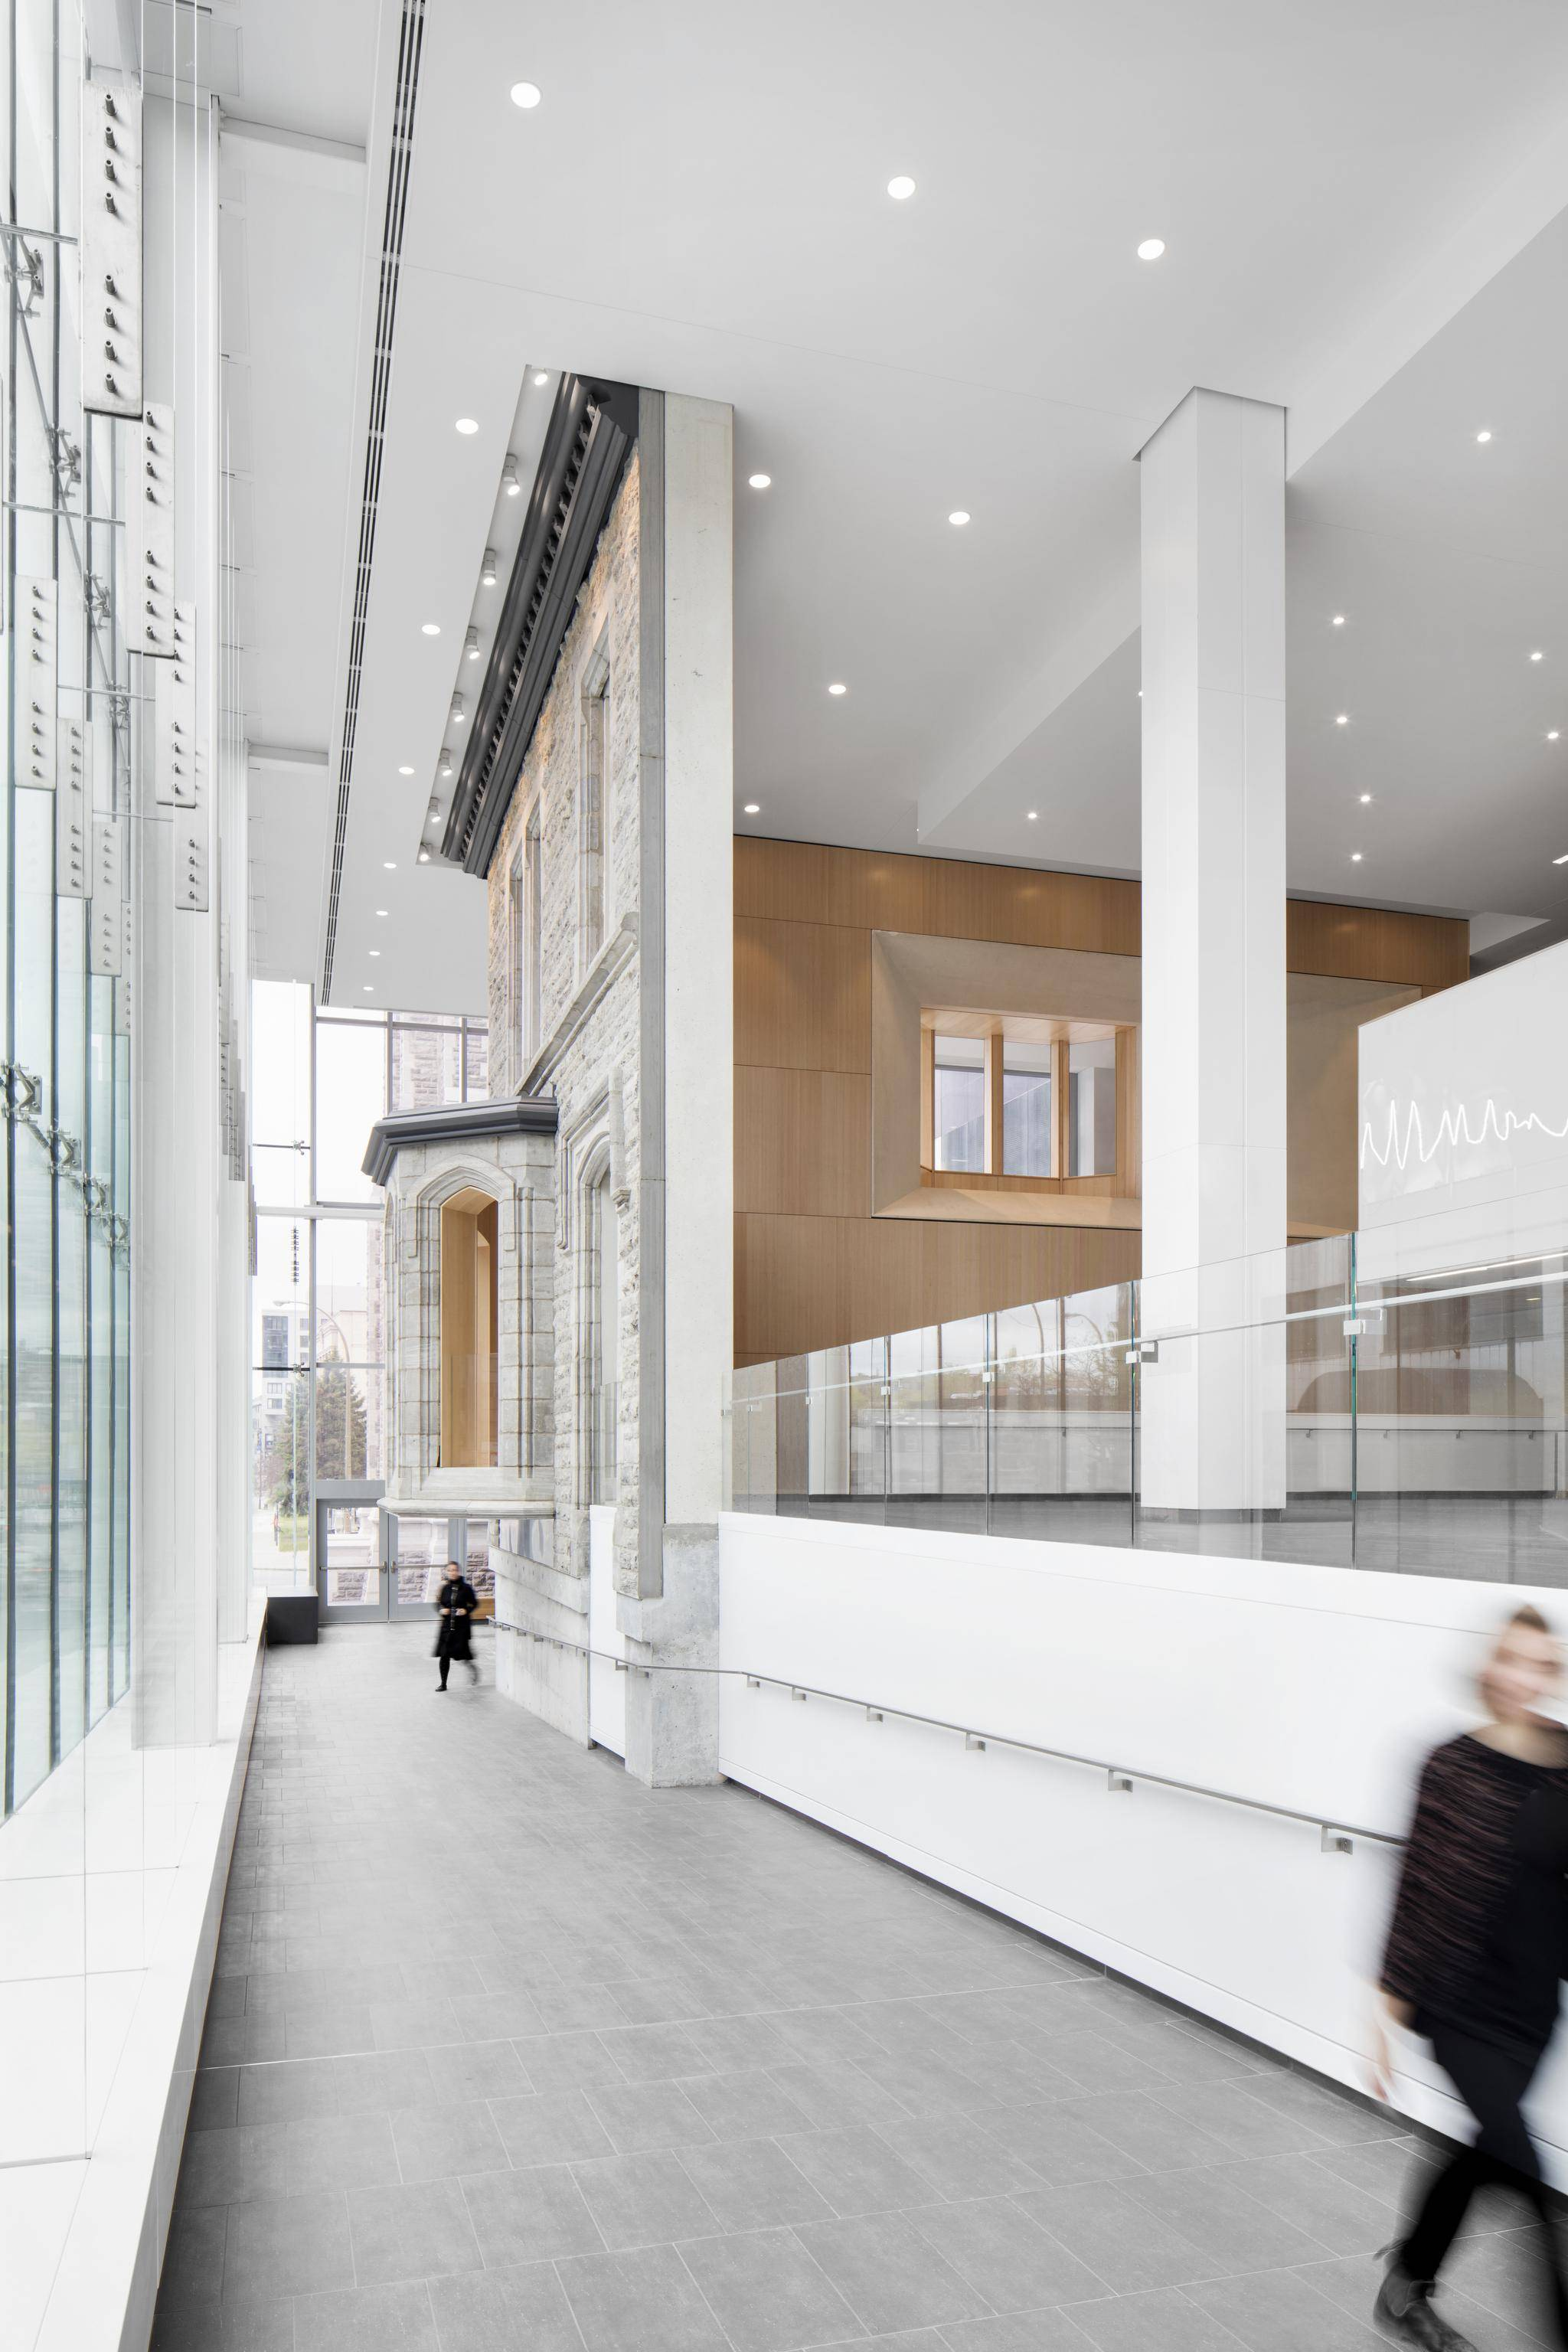 University of montreal s hospital centre puts patients first but it faces obstacles with its for Montreal interior design firms